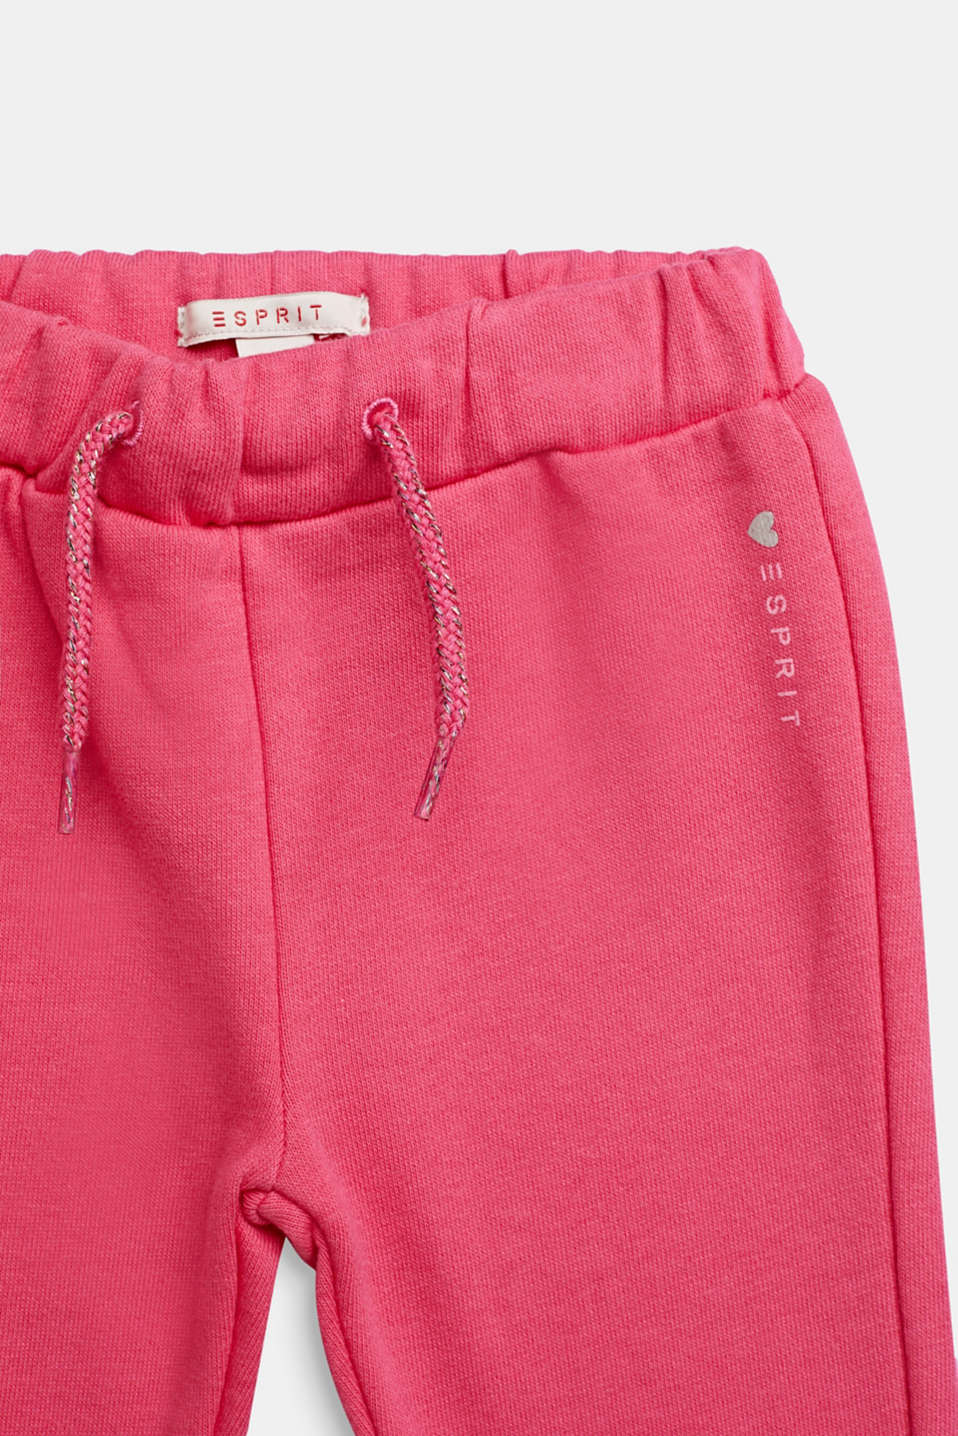 Sweatshirt trousers with glittering drawstring ties, 100% cotton, LCCANDY PINK, detail image number 2